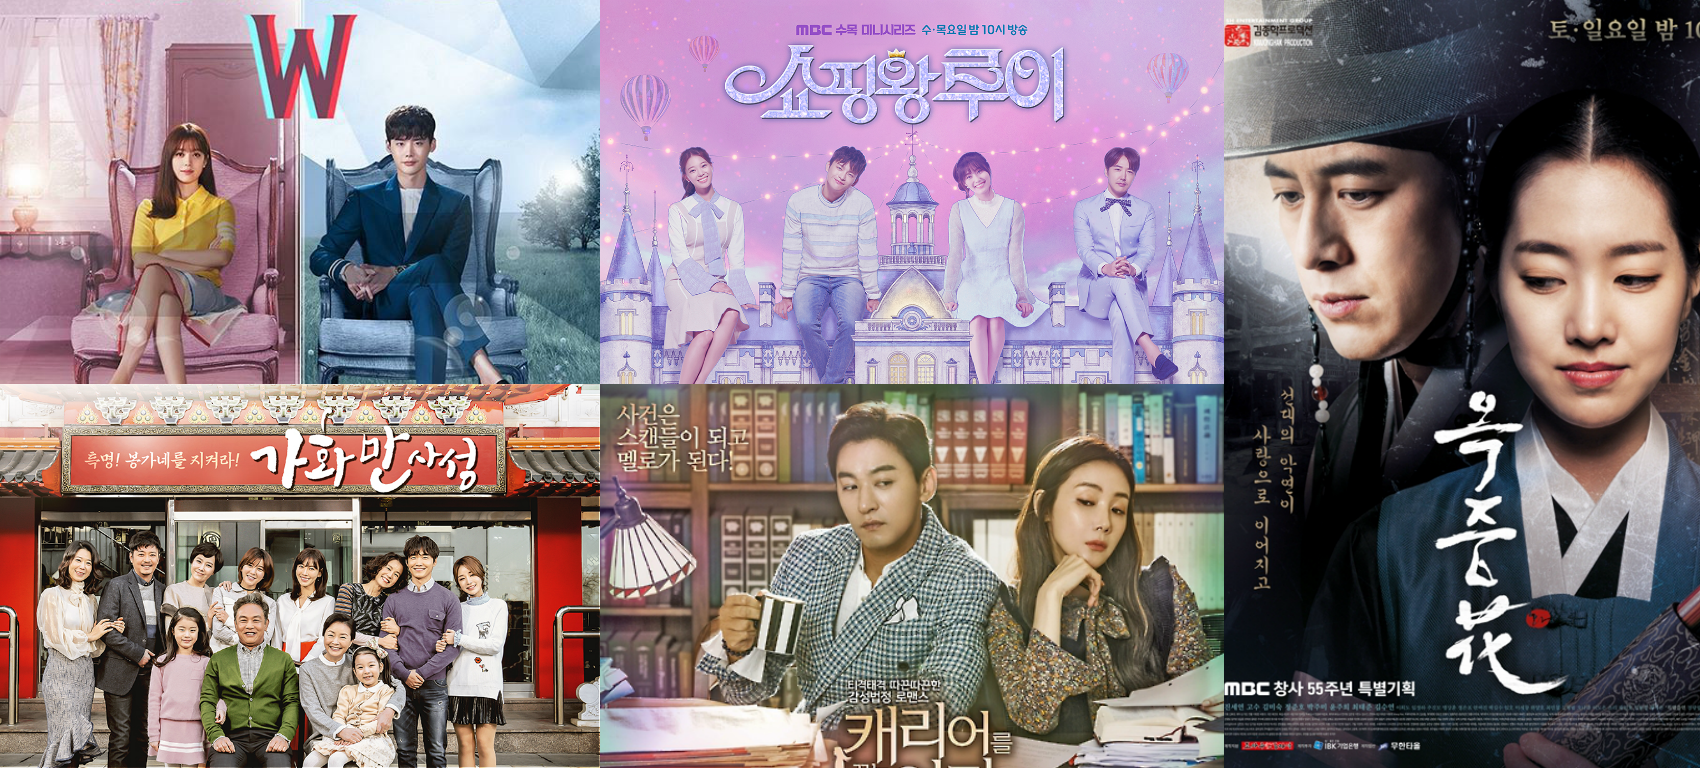 Winner Of Grand Prize For 2016 MBC Drama Awards To Be Determined By Viewer Votes